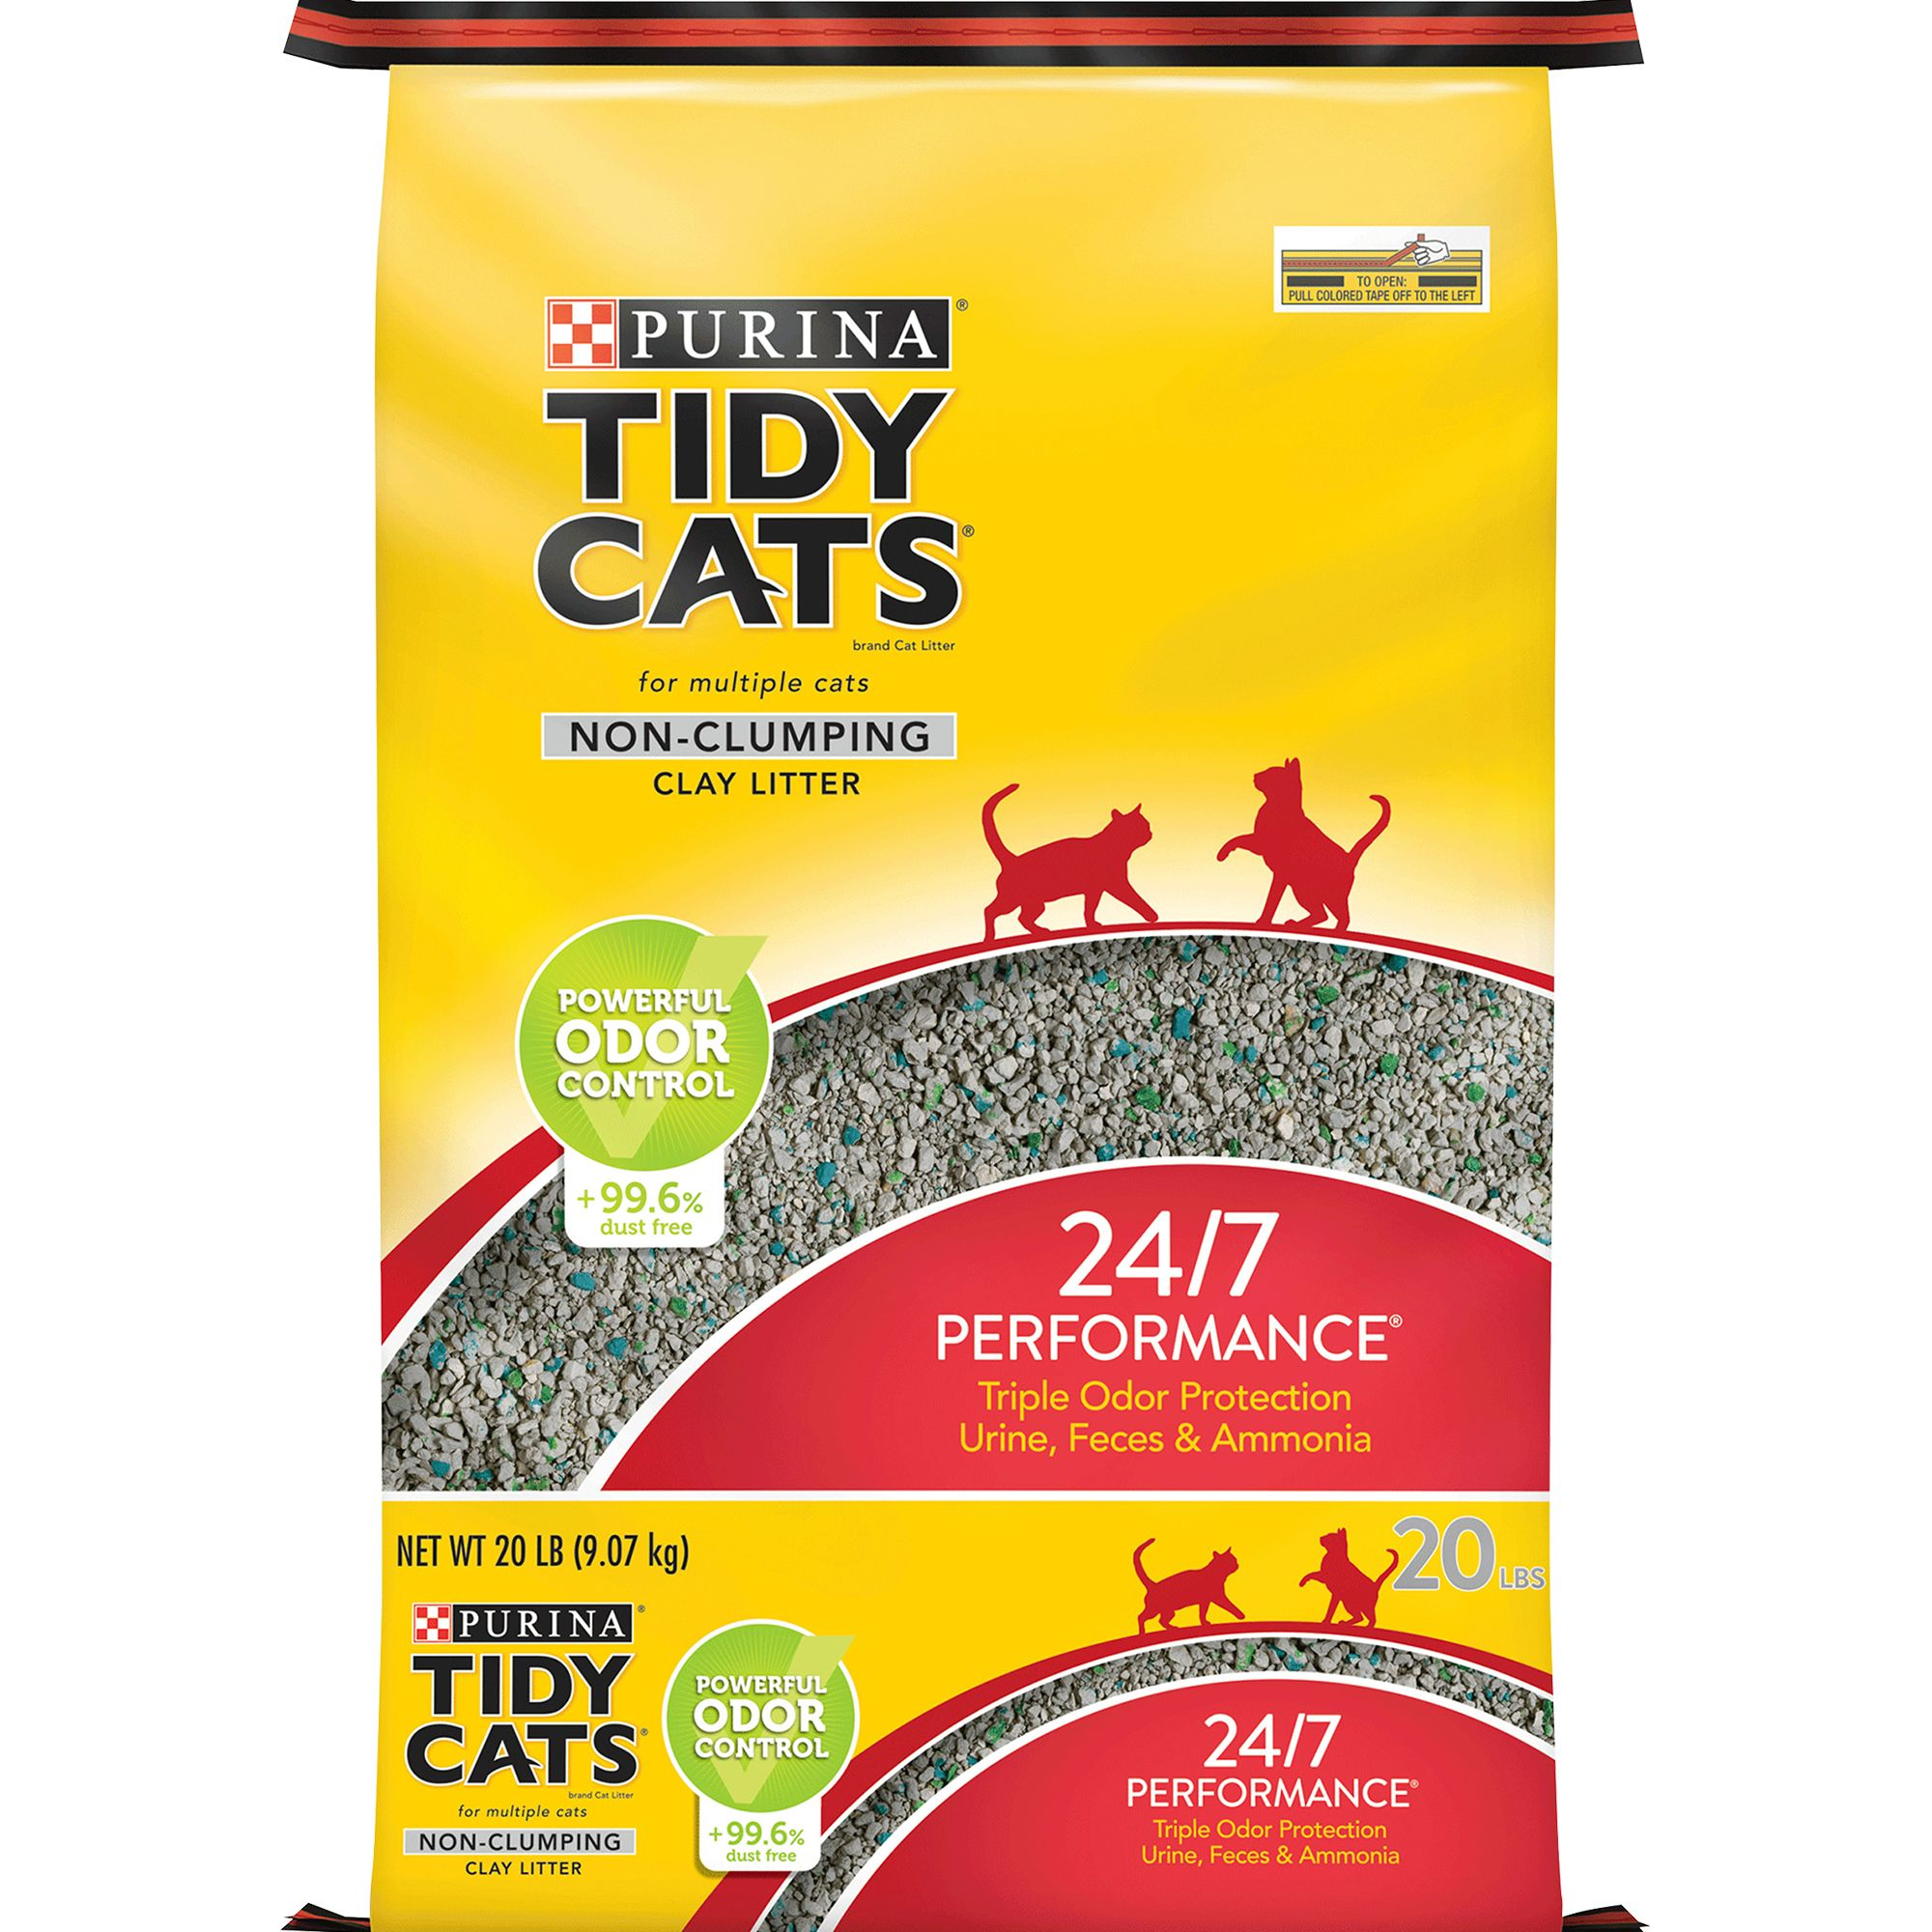 Purina Tidy Cats 24/7 Performance Cat Litter Non Clumping Multi Cat Size 20 Lb